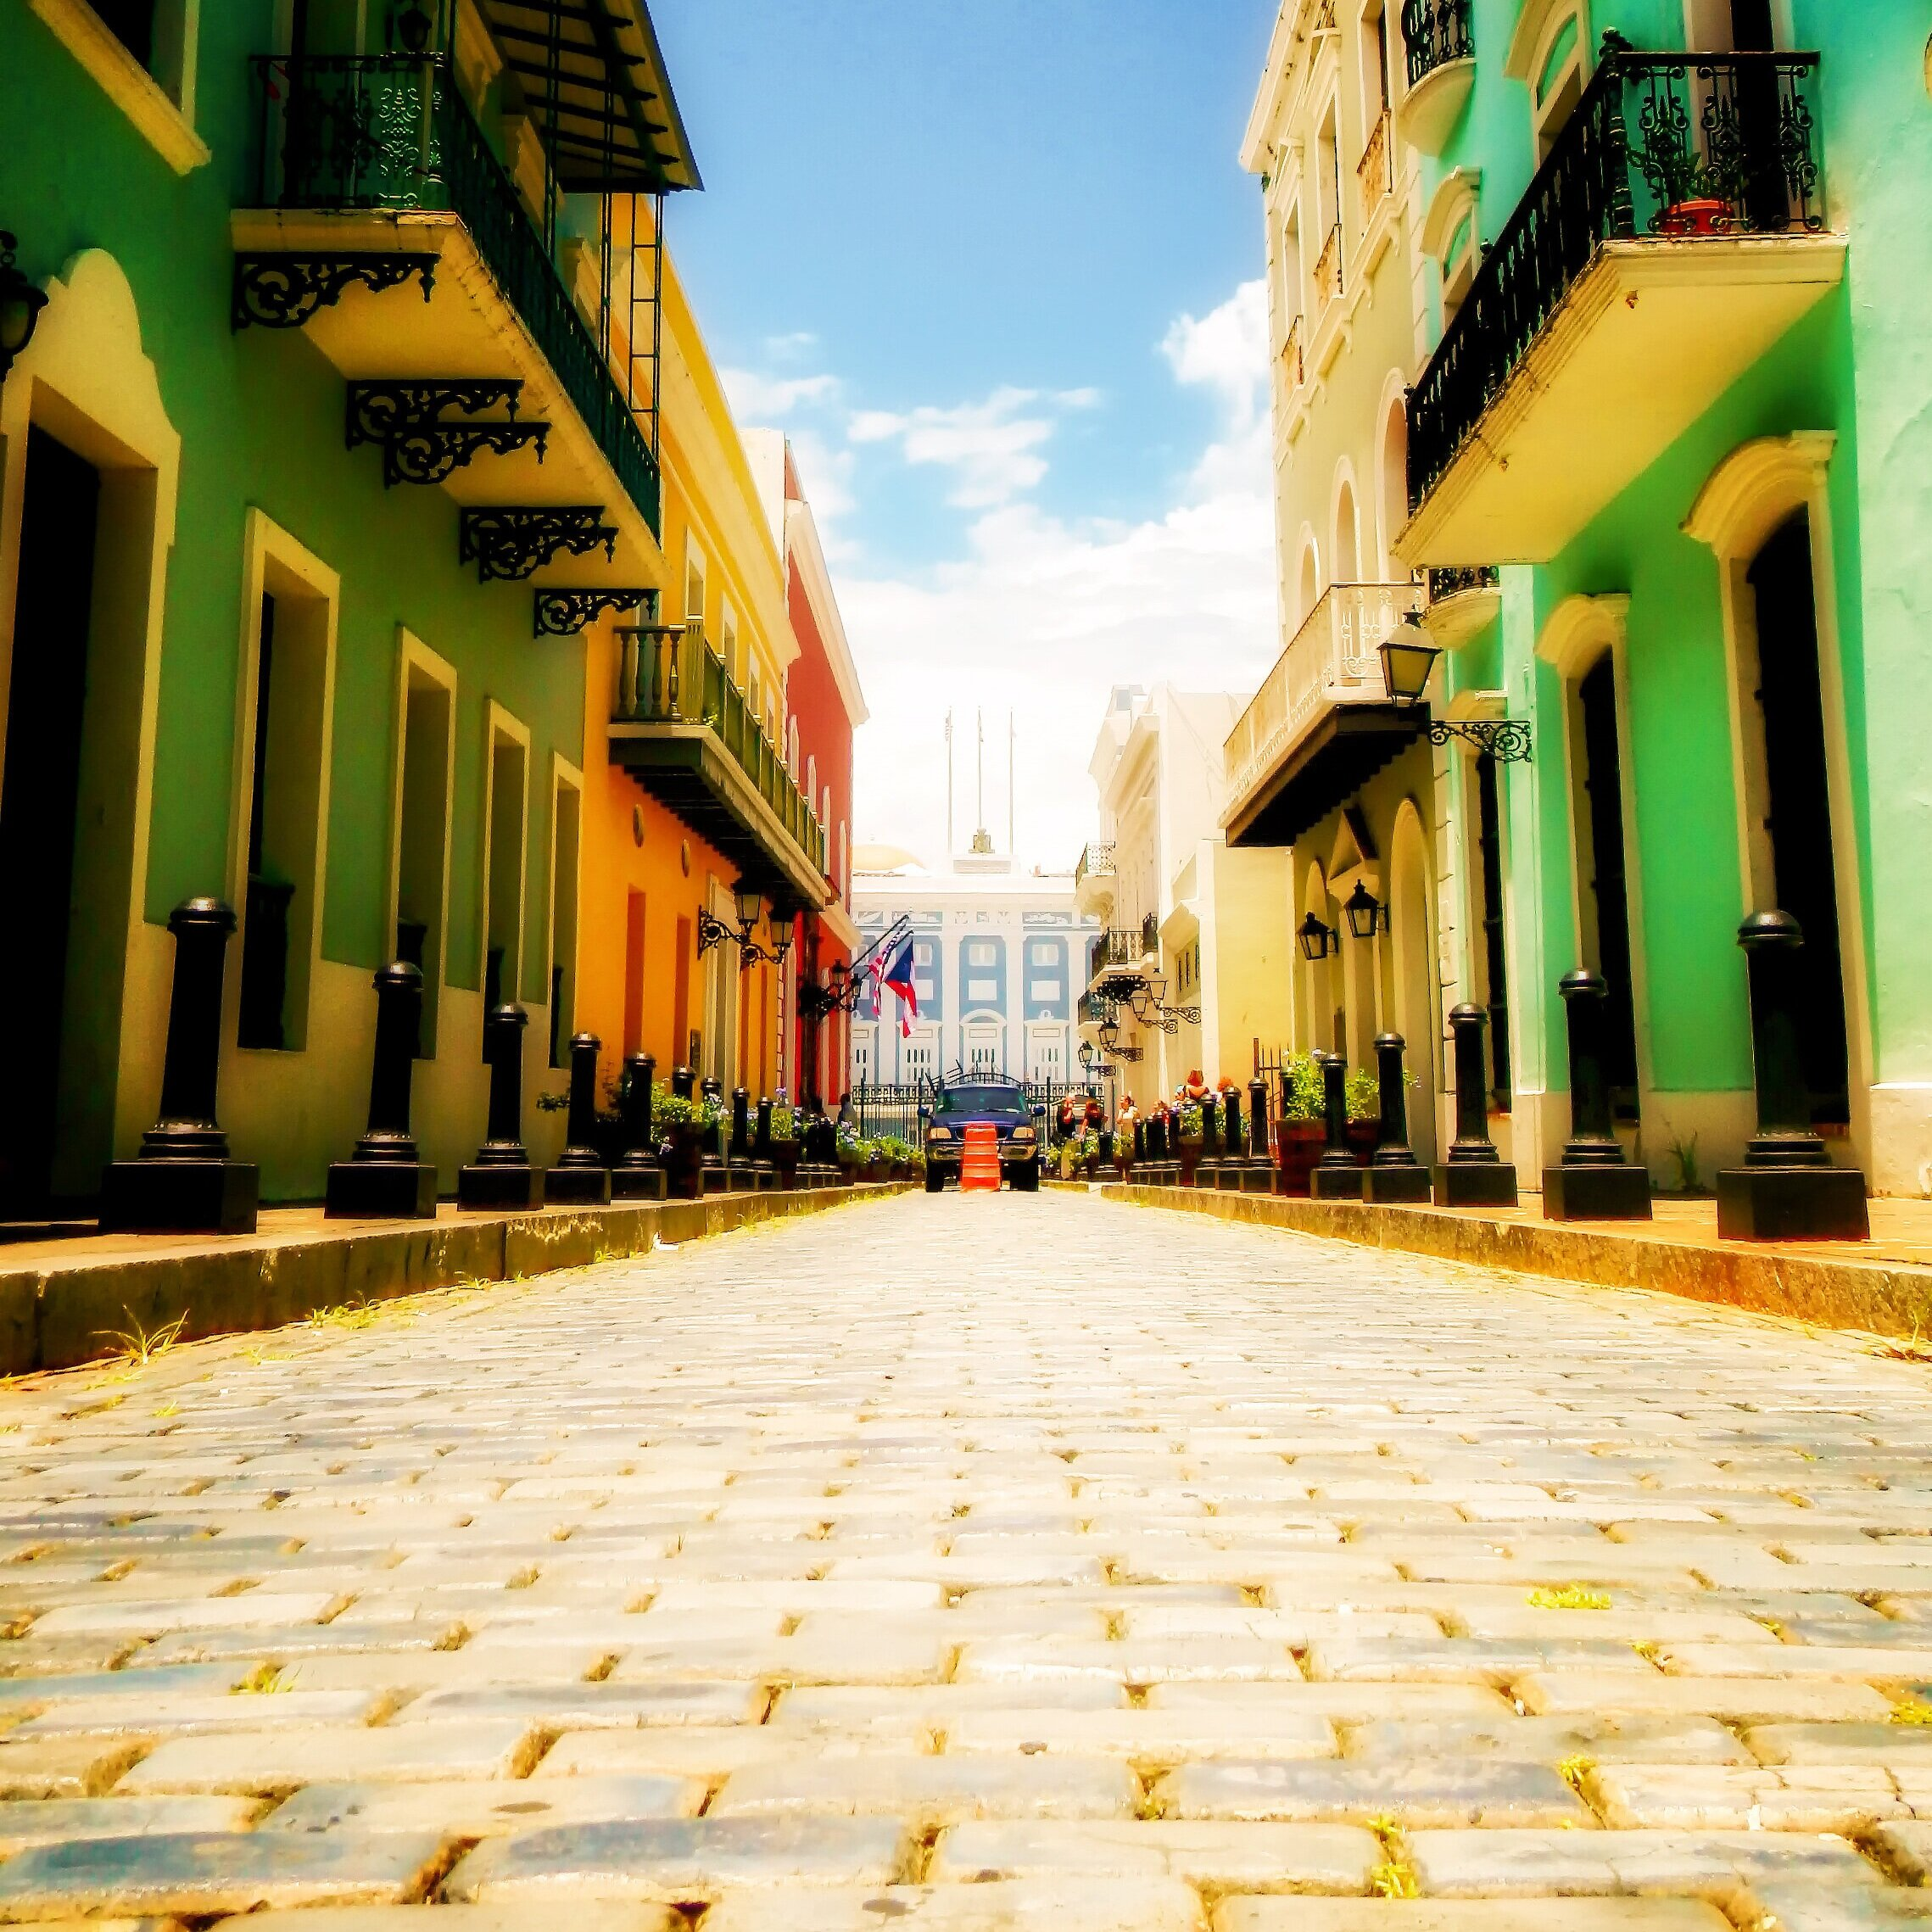 A Weekend in Old San Juan